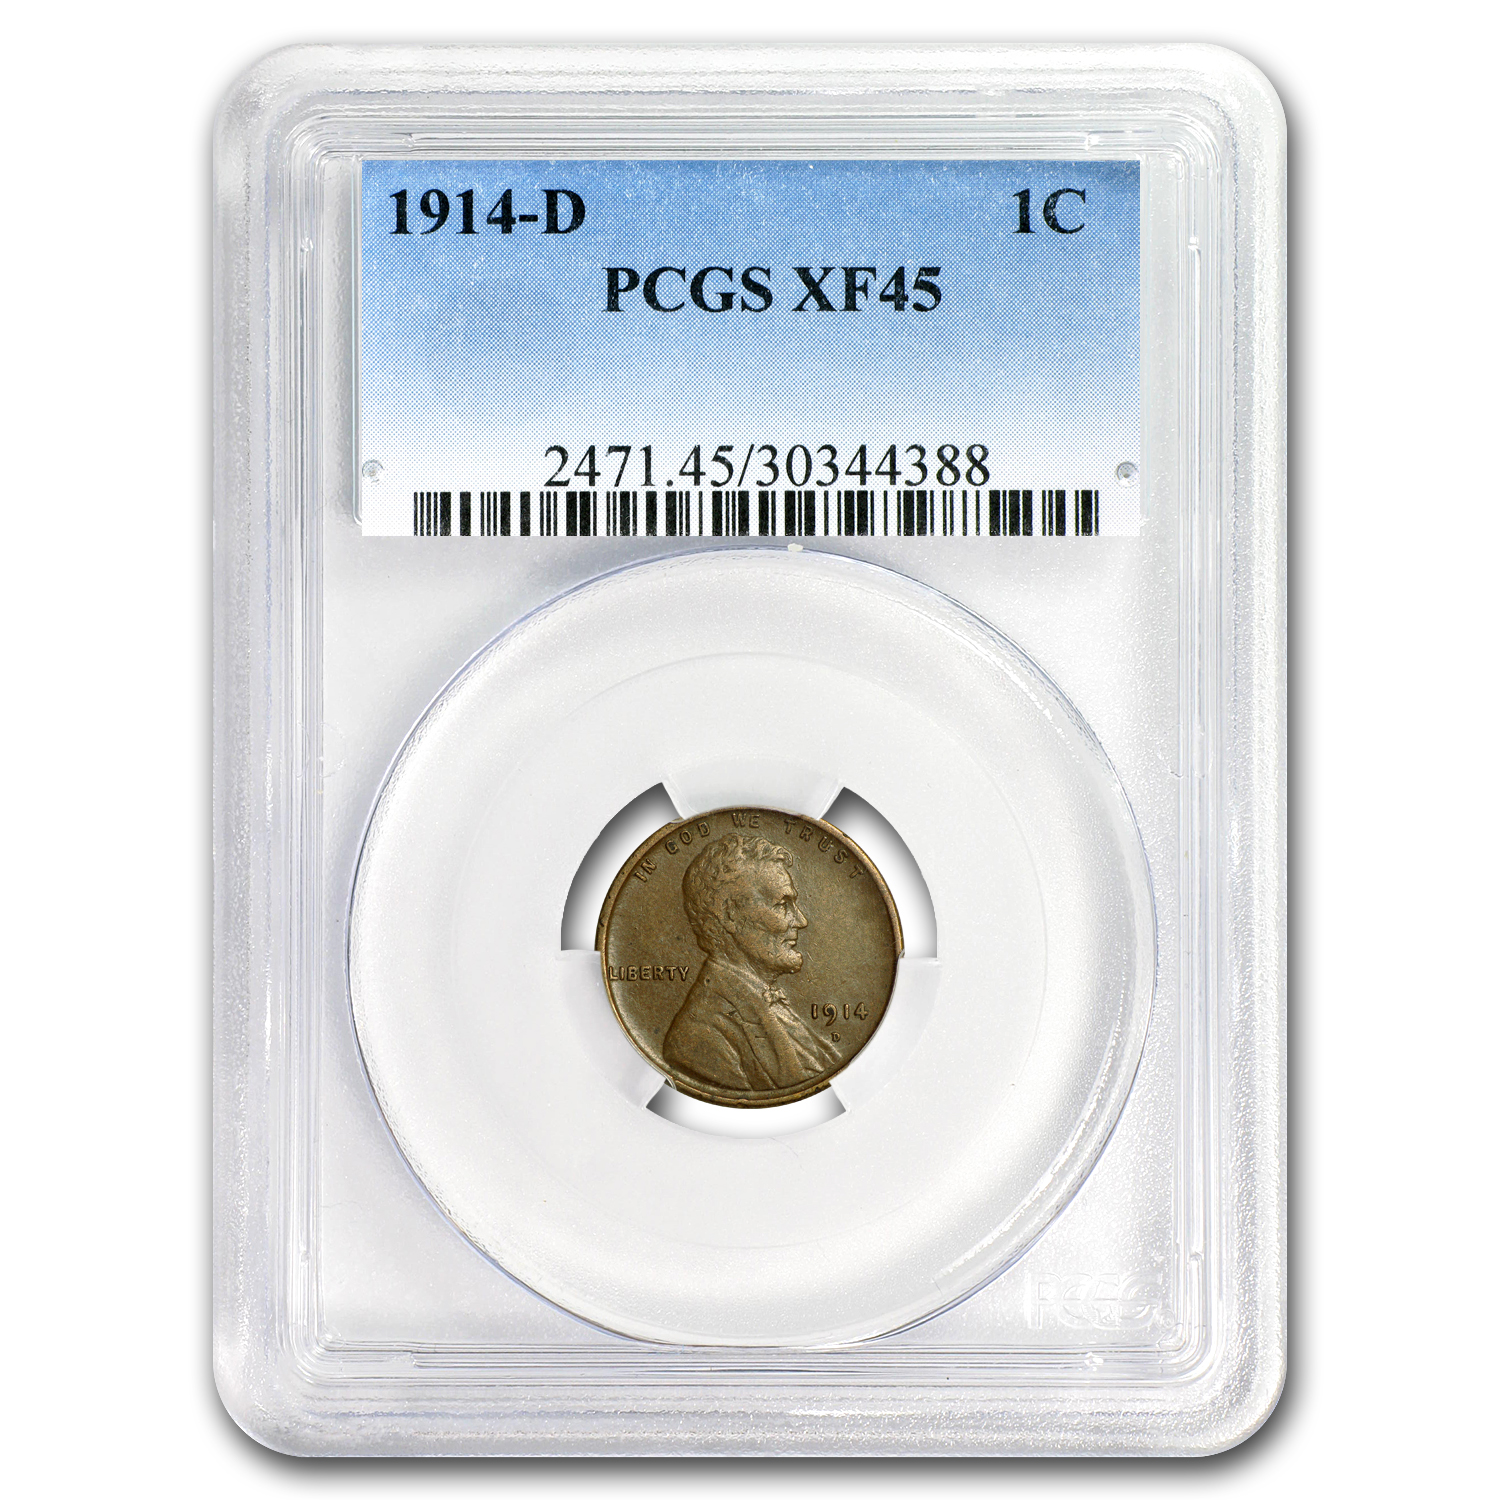 1914-D Lincoln Cent XF-45 PCGS